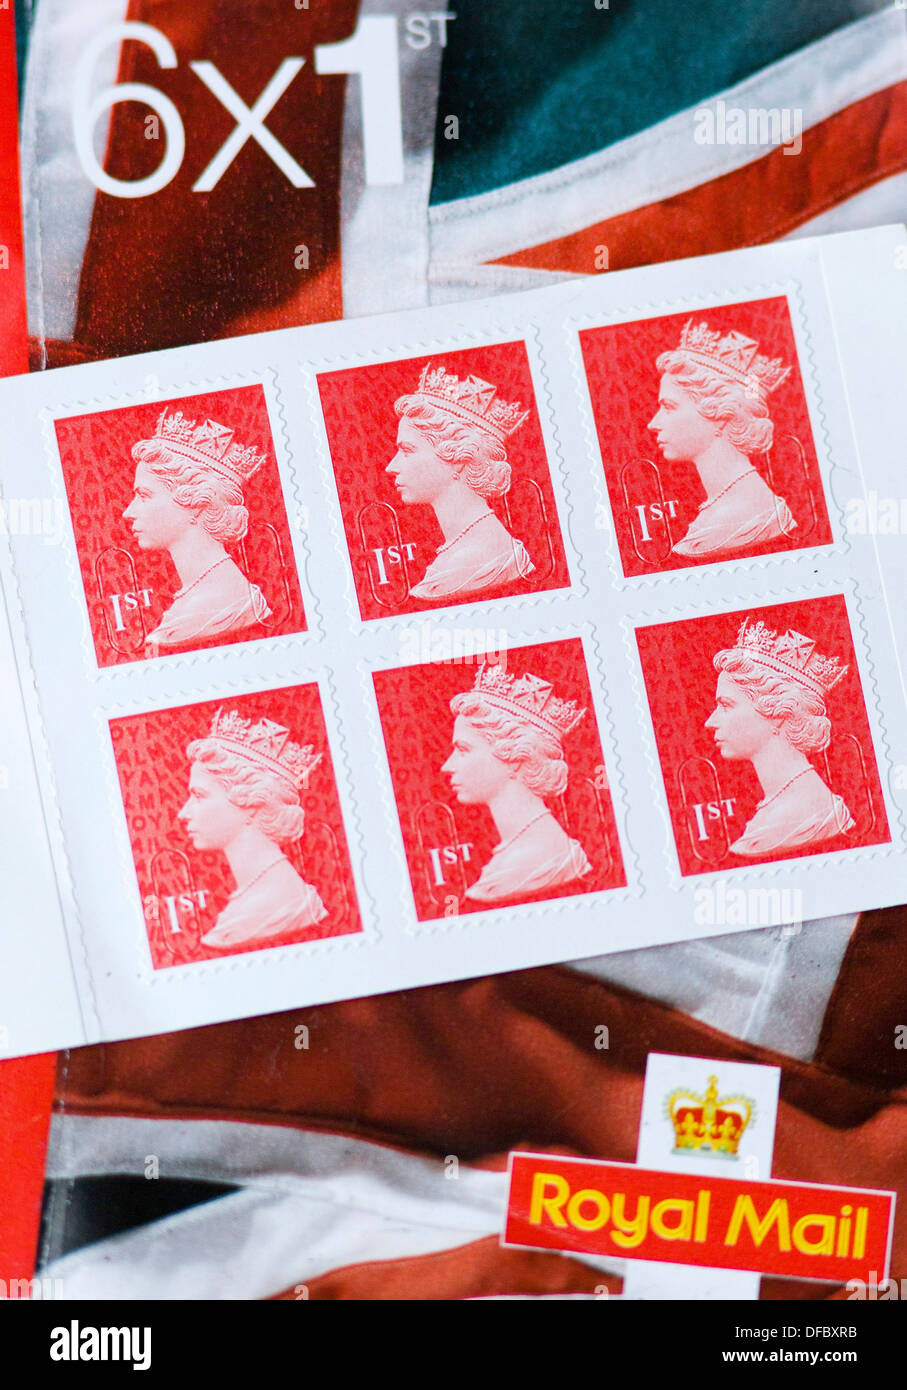 UNITED KINGDOM, London : A picture shows books of Royal Mail First Class Stamps on September 12, 2013.  - Stock Image